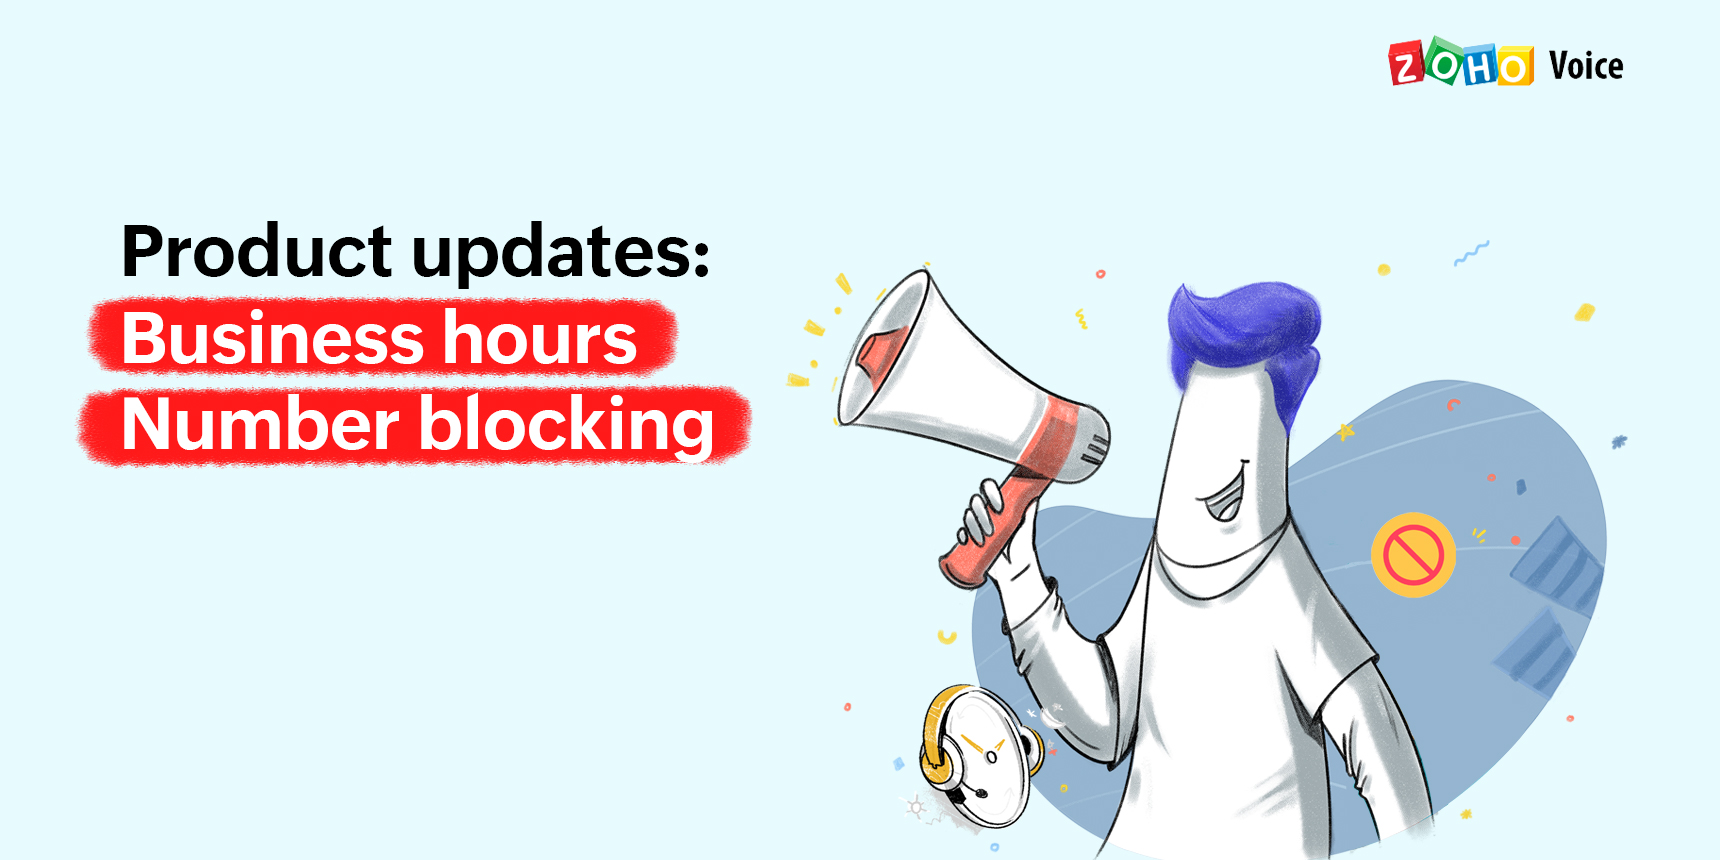 Configure business hours for your phone numbers and route calls accordingly